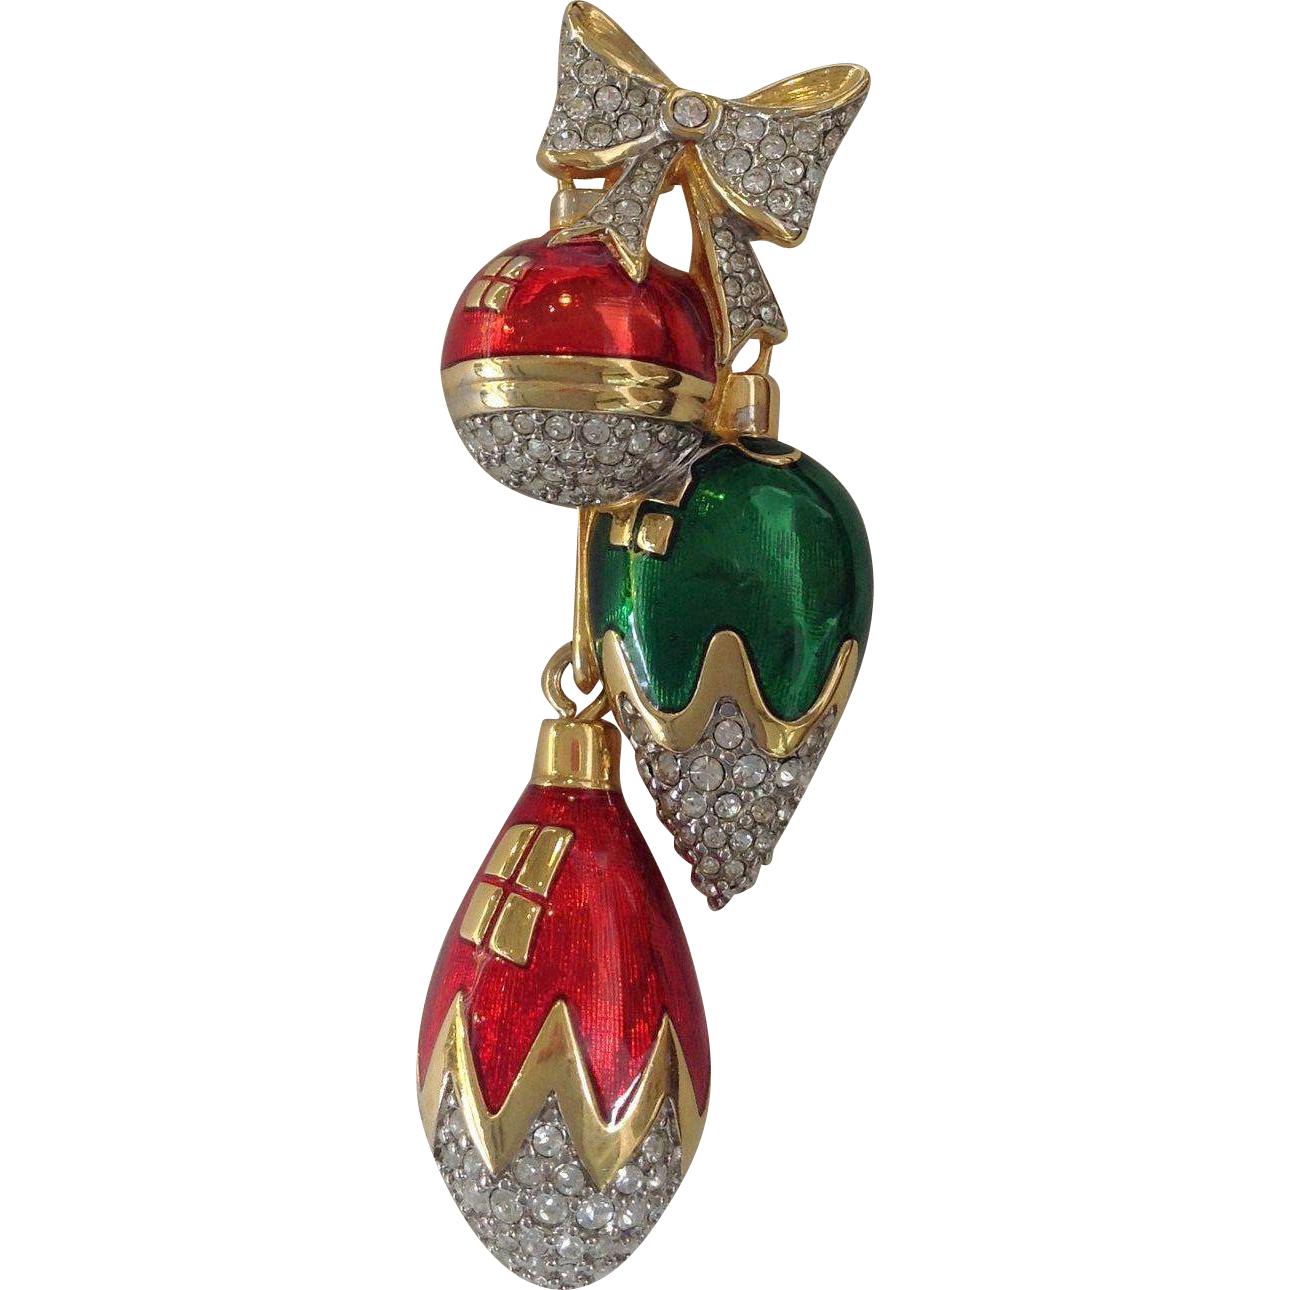 Swarovski hanging christmas decorations pin from antiquesofriveroaks on ruby lane - Hanging christmas ornaments ...